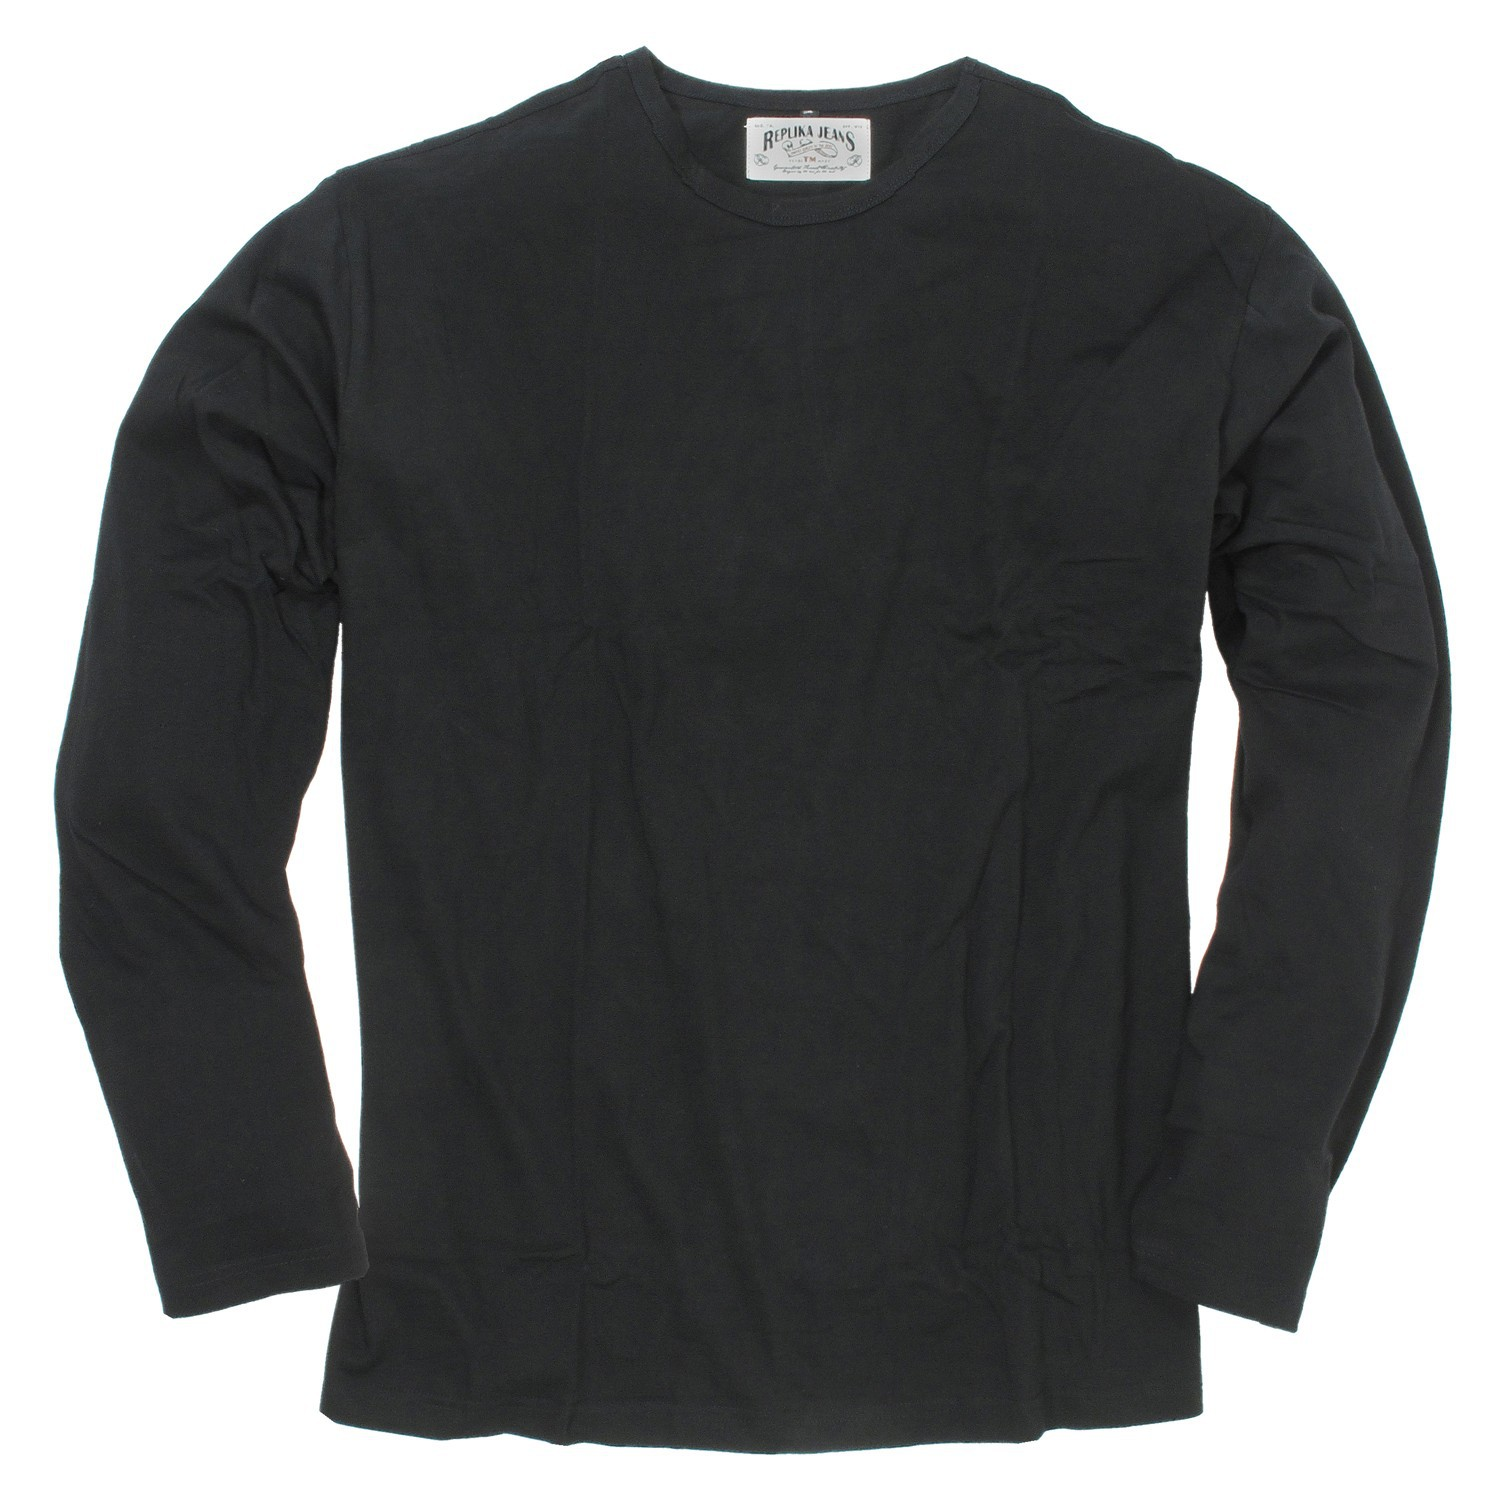 Detail Image to Black longsleeve for men by Replika up to oversize 8XL